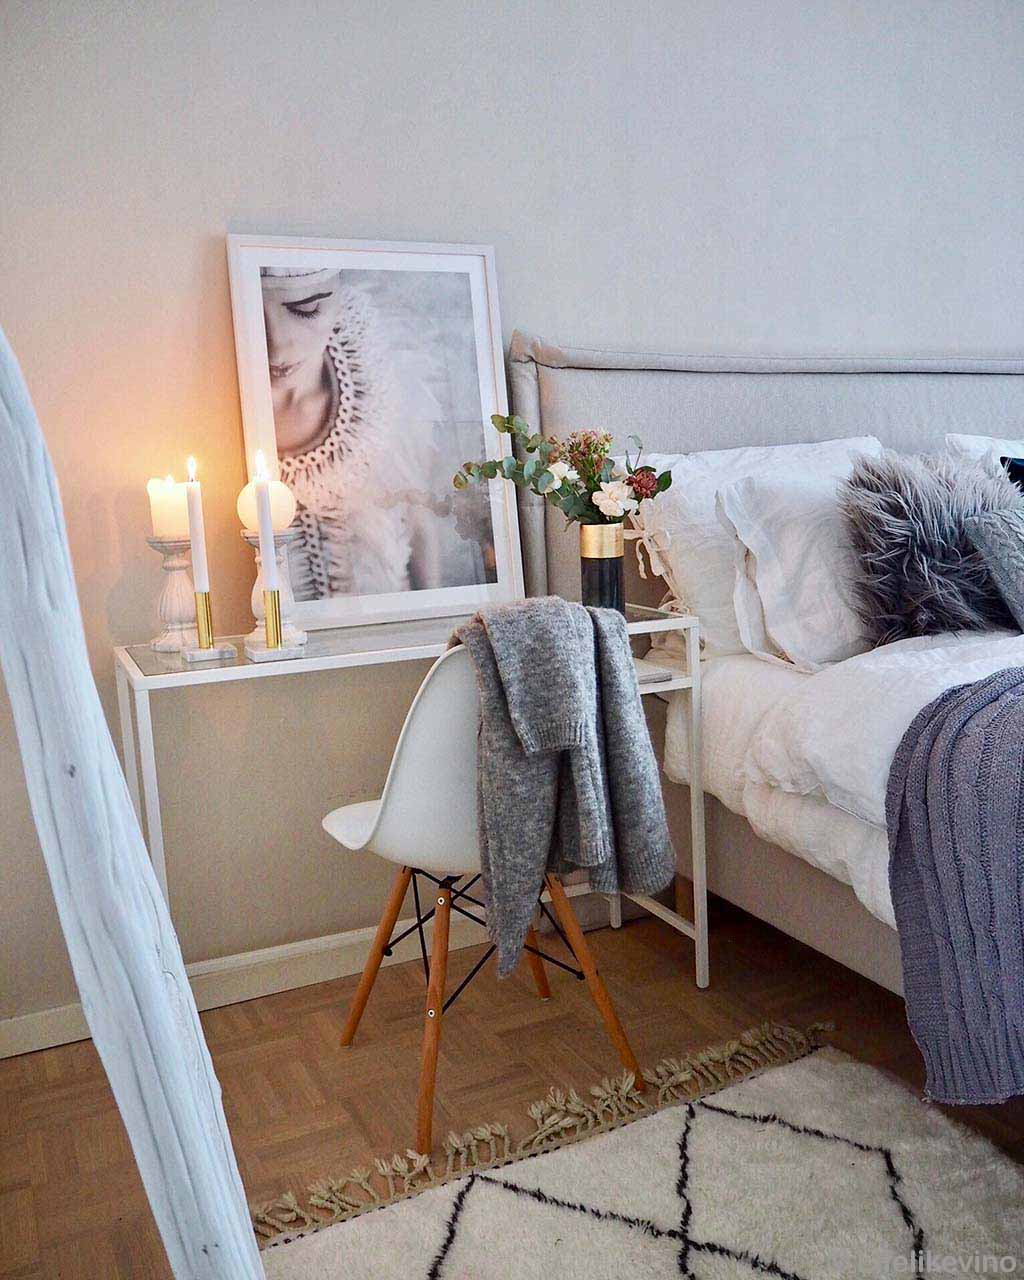 woolen bed vase and painting designer rugs